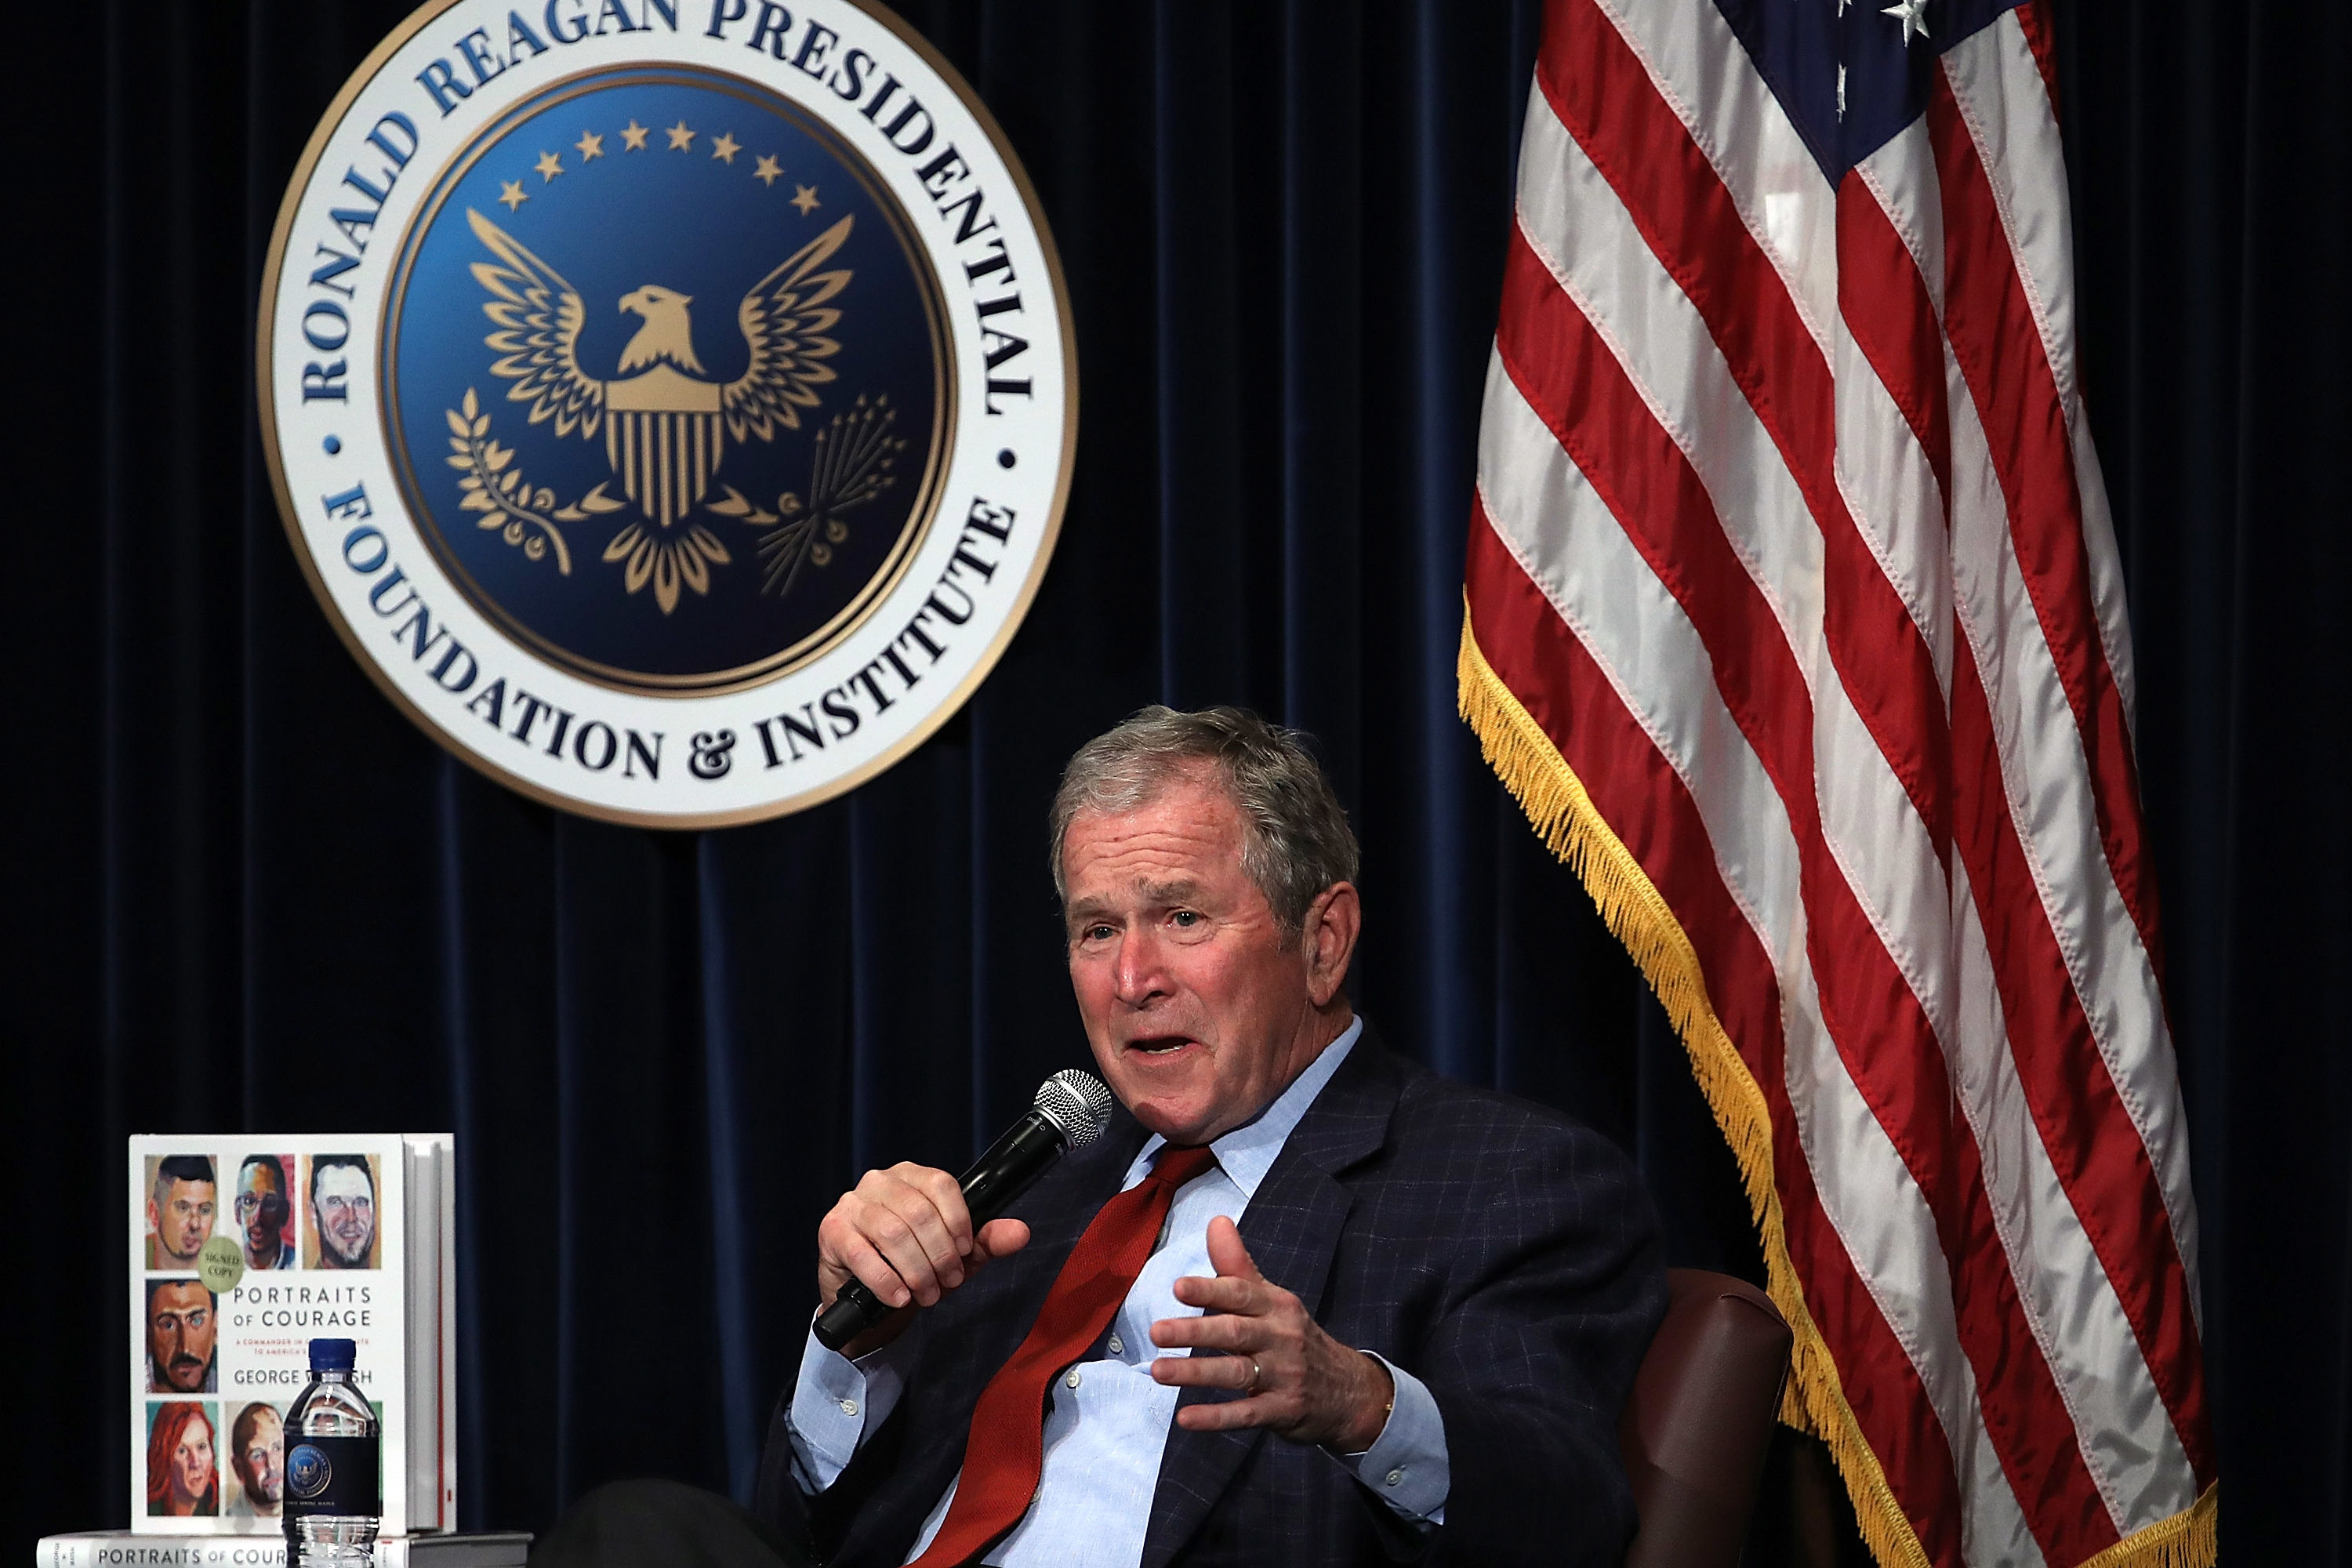 The Moving Paintings from George W. Bush's Portraits of Courage Are On Display Now in Dallas